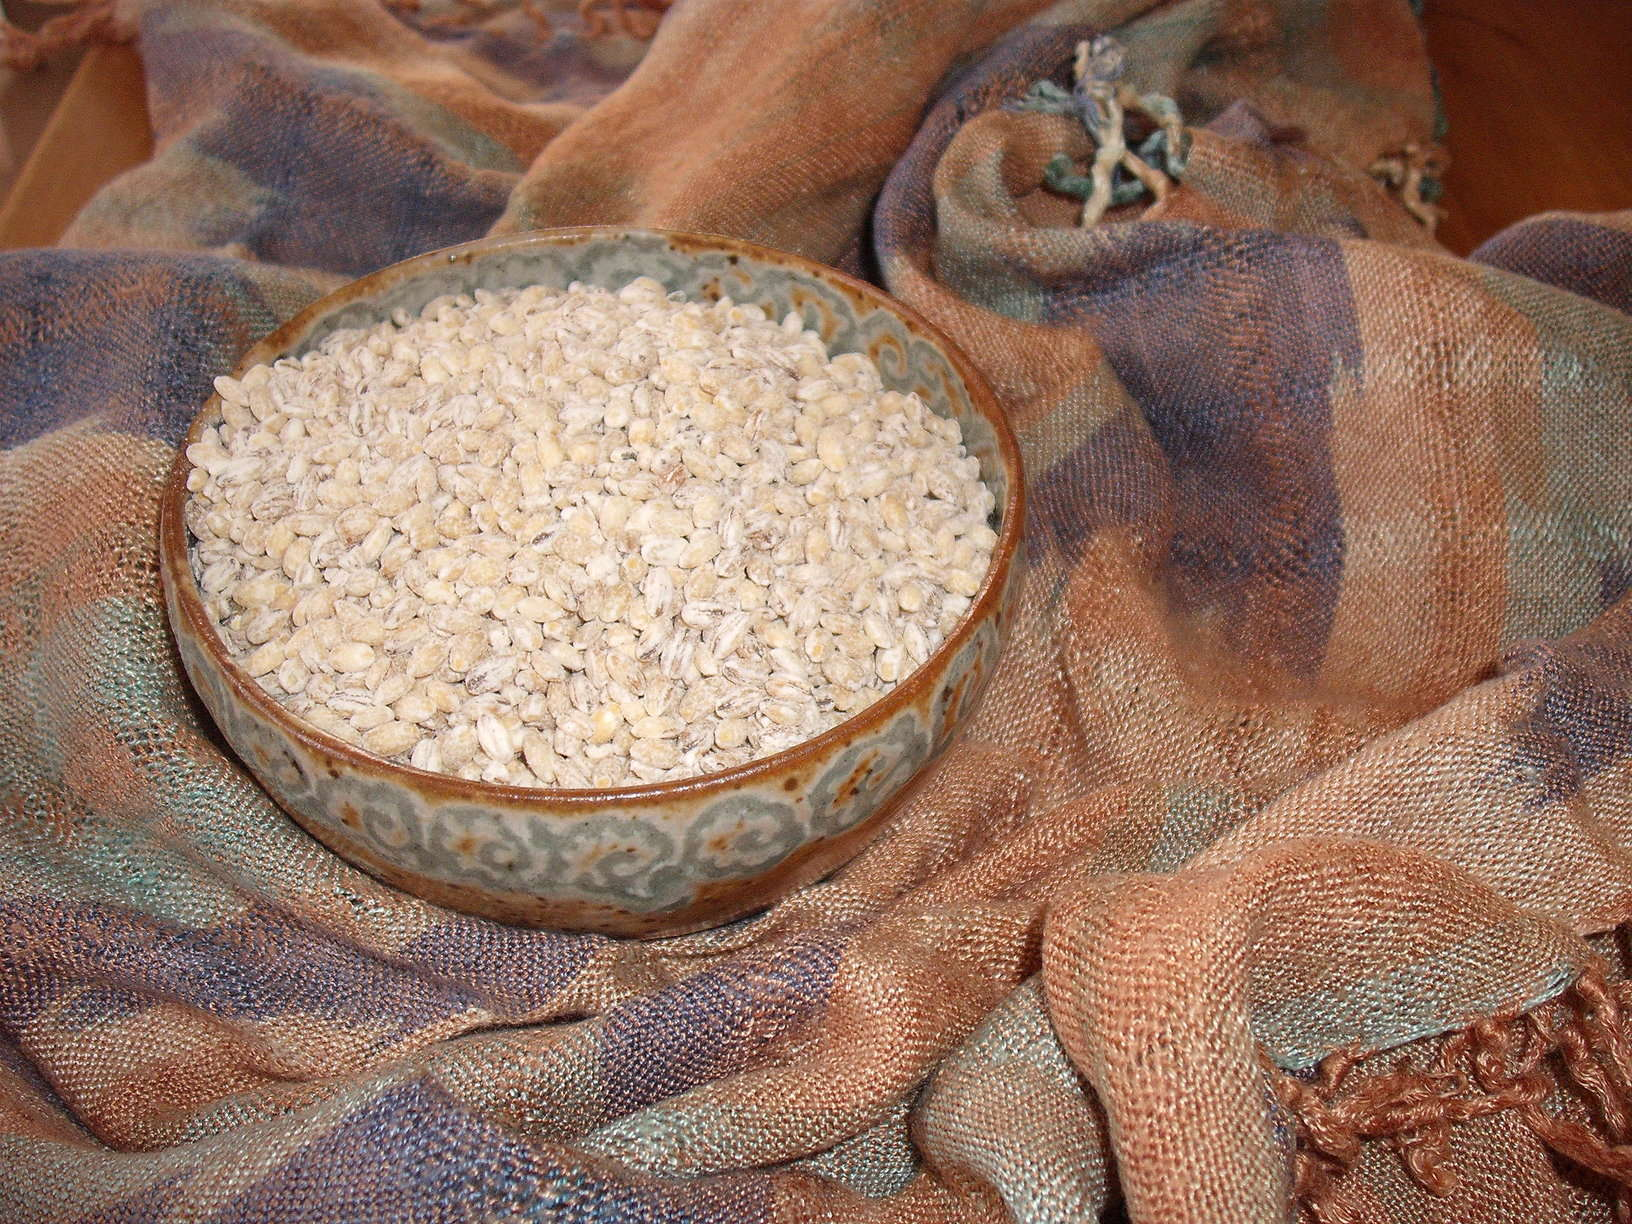 Barley: An Ancient Grain for the Healthy Modern Kitchen